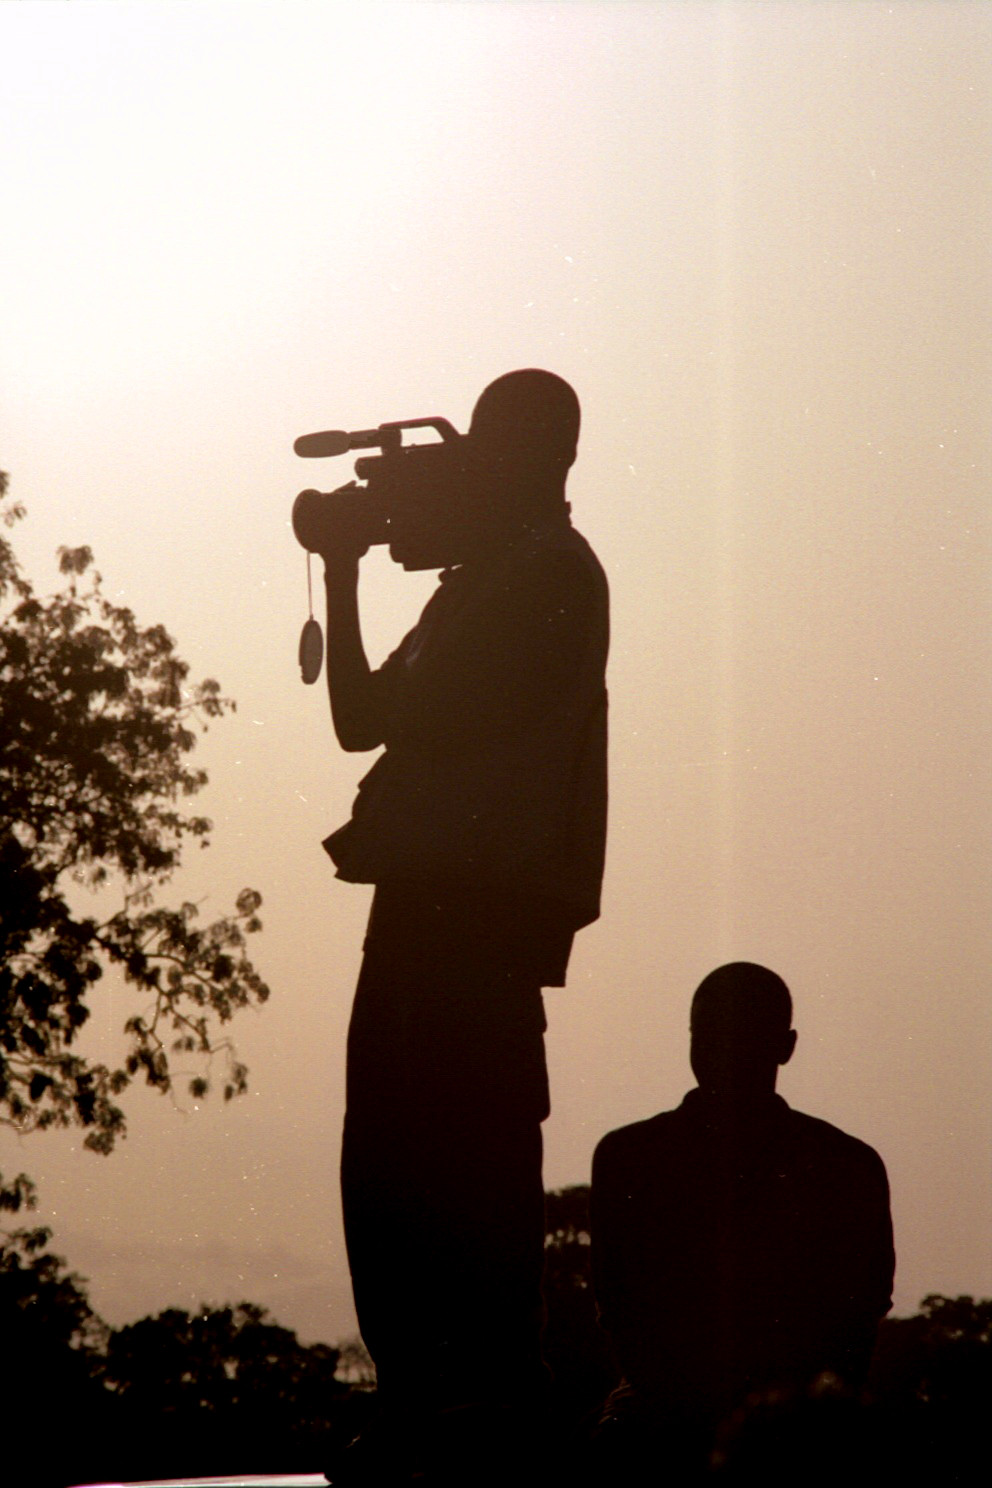 While on a 5 week trip to Africa, I was given an opportunity to work with the Gambian Television and Radio Service. We traveled to the President's home and shoot a festival that I can't quite recall. While shooting, I saw one of the cameramen standing on top of the truck shooting with his camera and I saw the silhouette of him and his camera and I thought it would be a great shot.